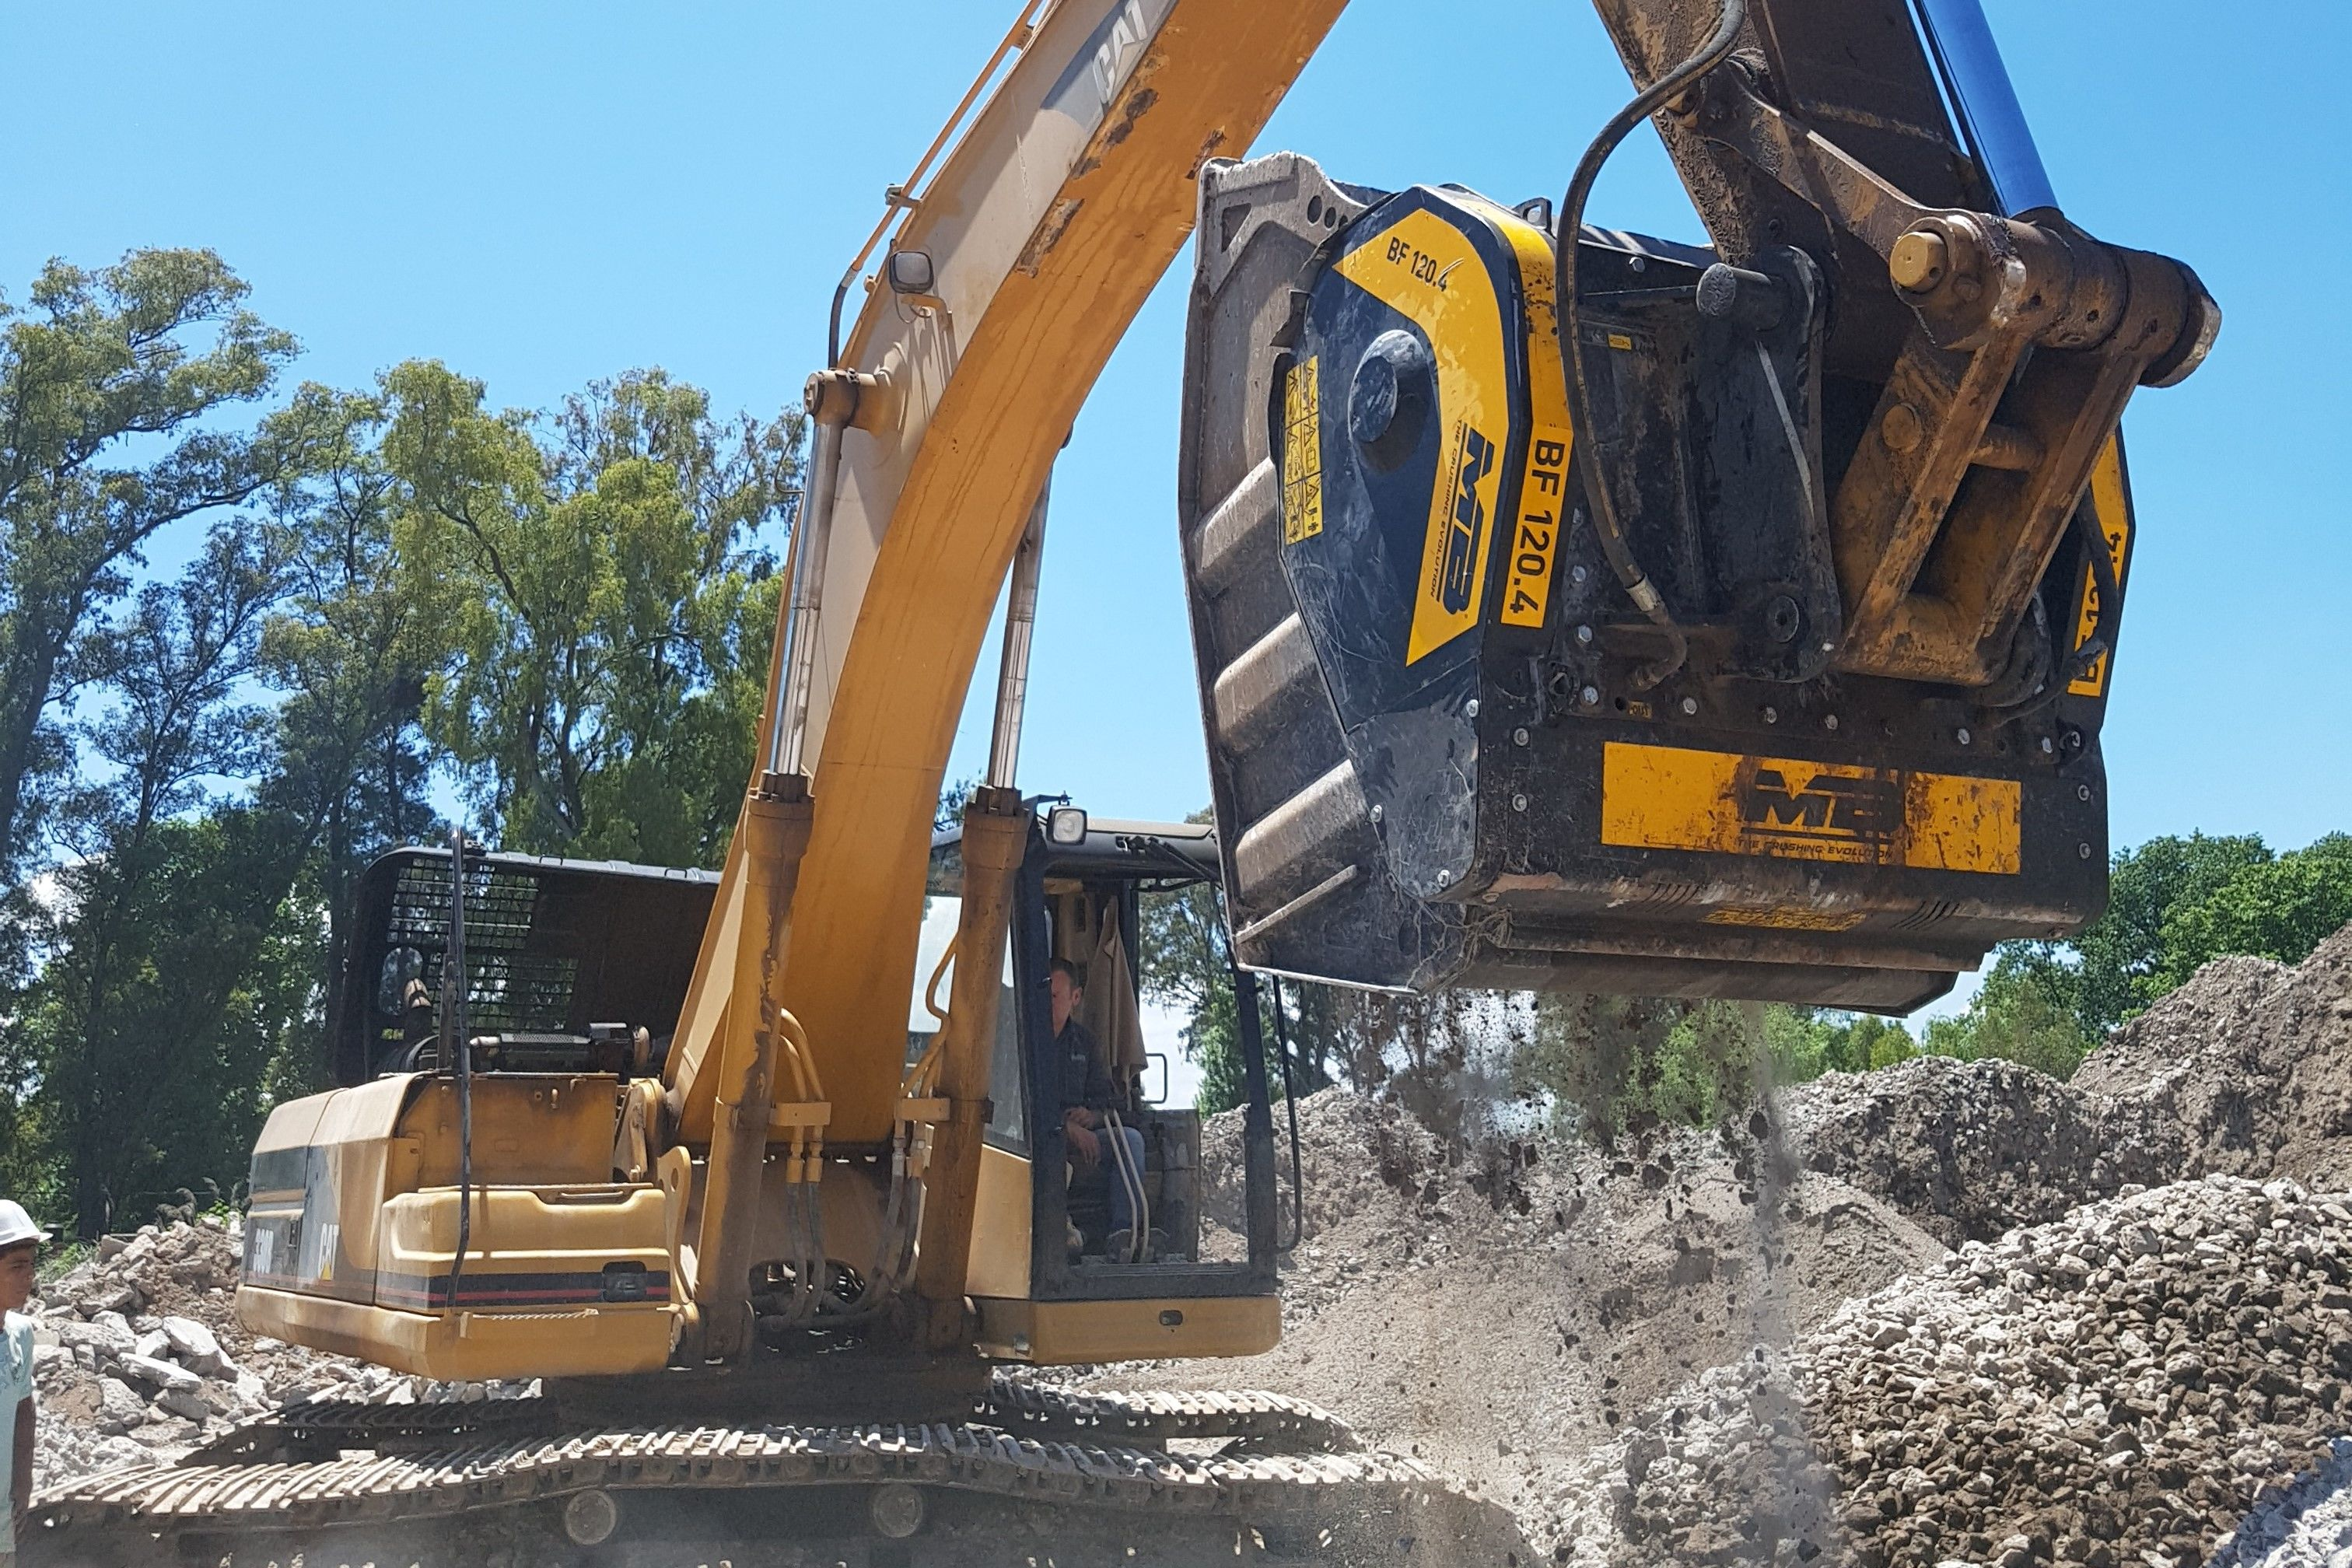 Mounted on a Cat excavator, the jaw crusher BF120.4 is recycling material to be reused on site